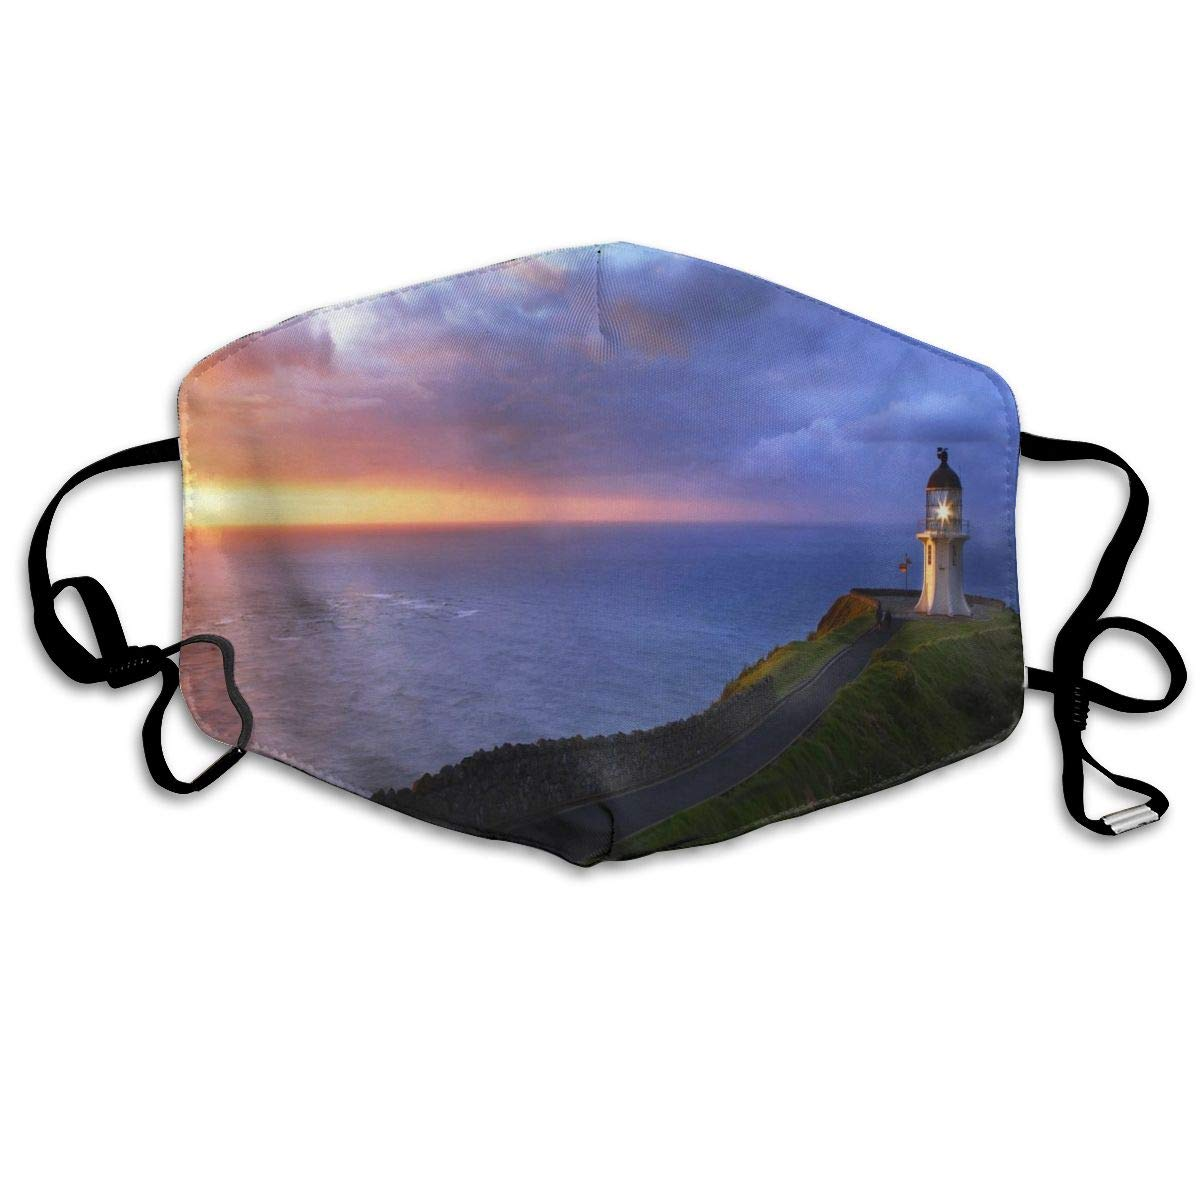 Lighthouse Pacific Fashion Dust Mouth Mask Reusable Anti-Dust Face Mask Adjustable Earloop Skin Protection